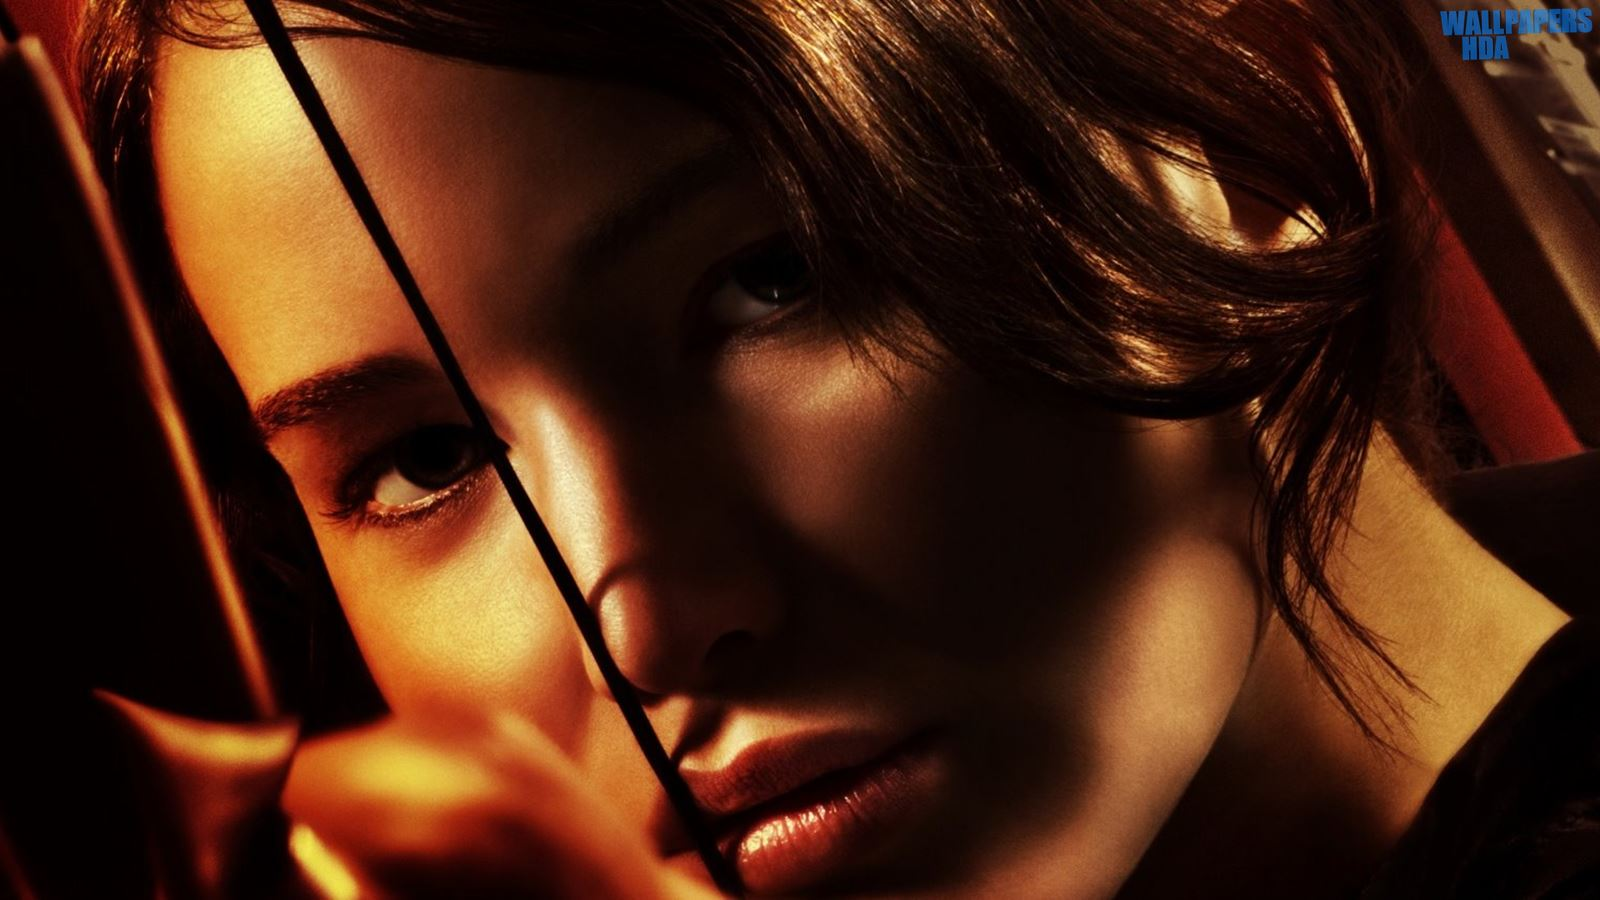 The hunger games wallpaper 1600x900